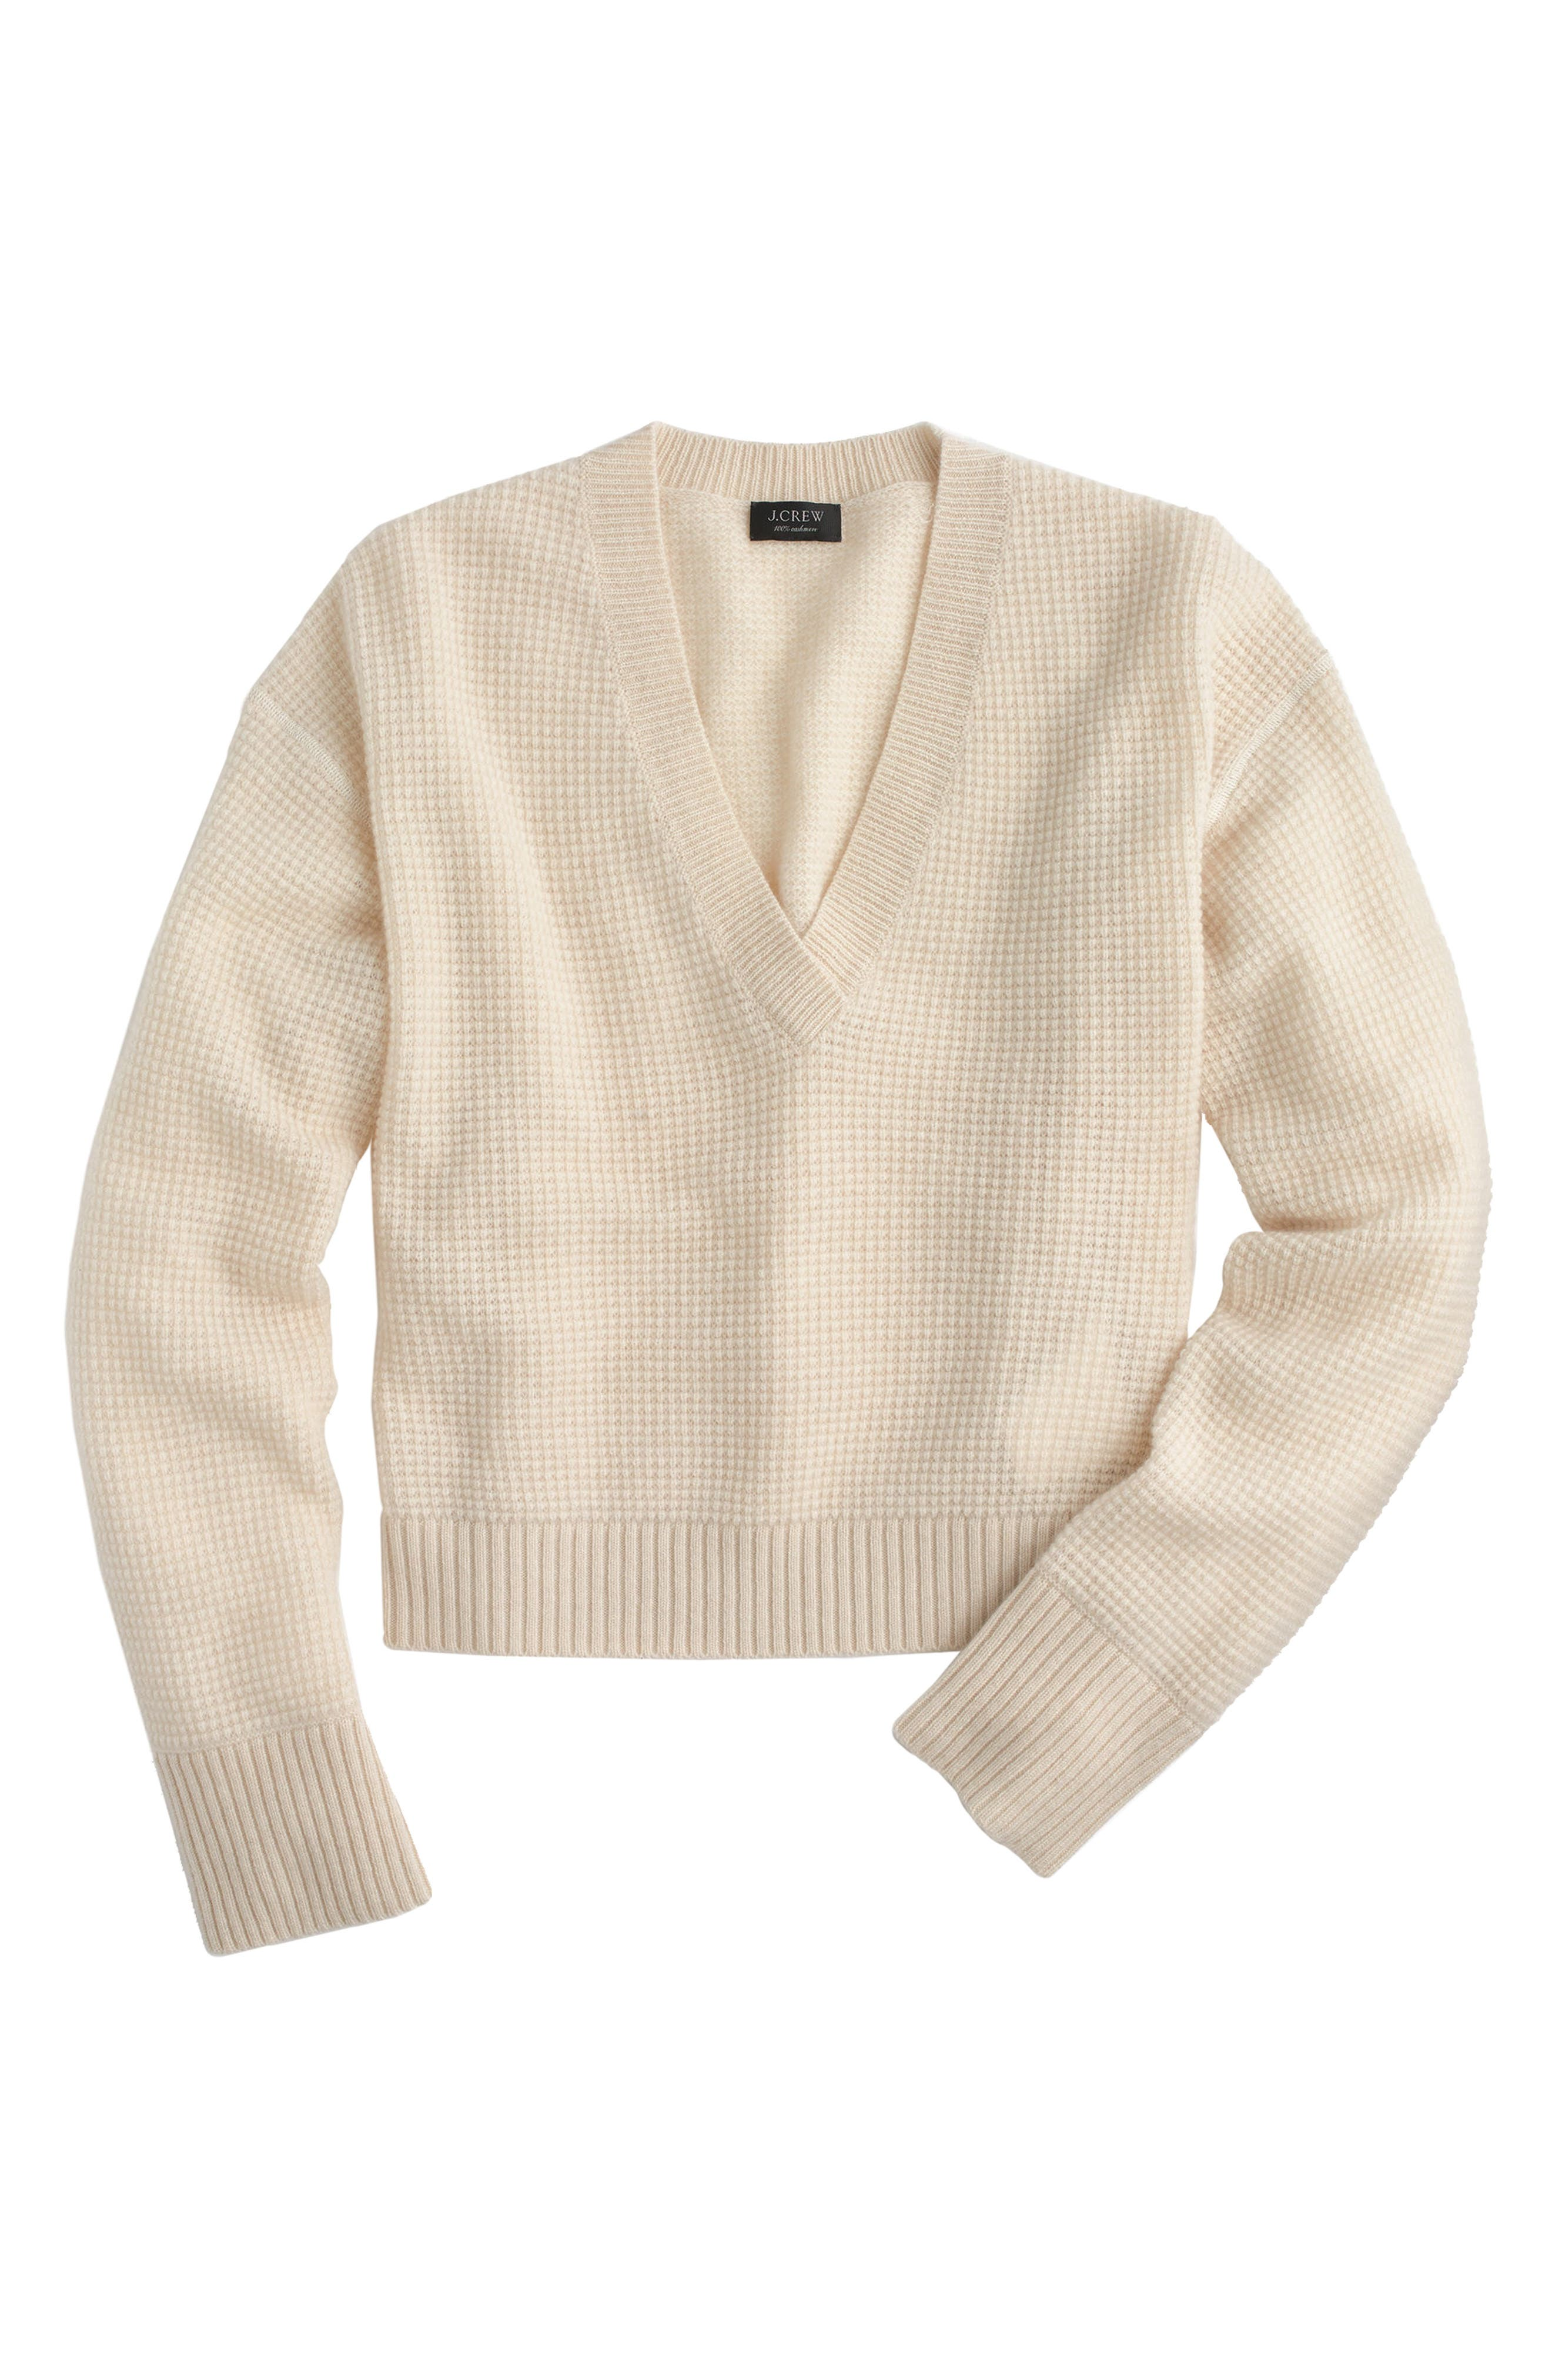 Main Image - J.Crew V-Neck Crop Thermal Cashmere Sweater